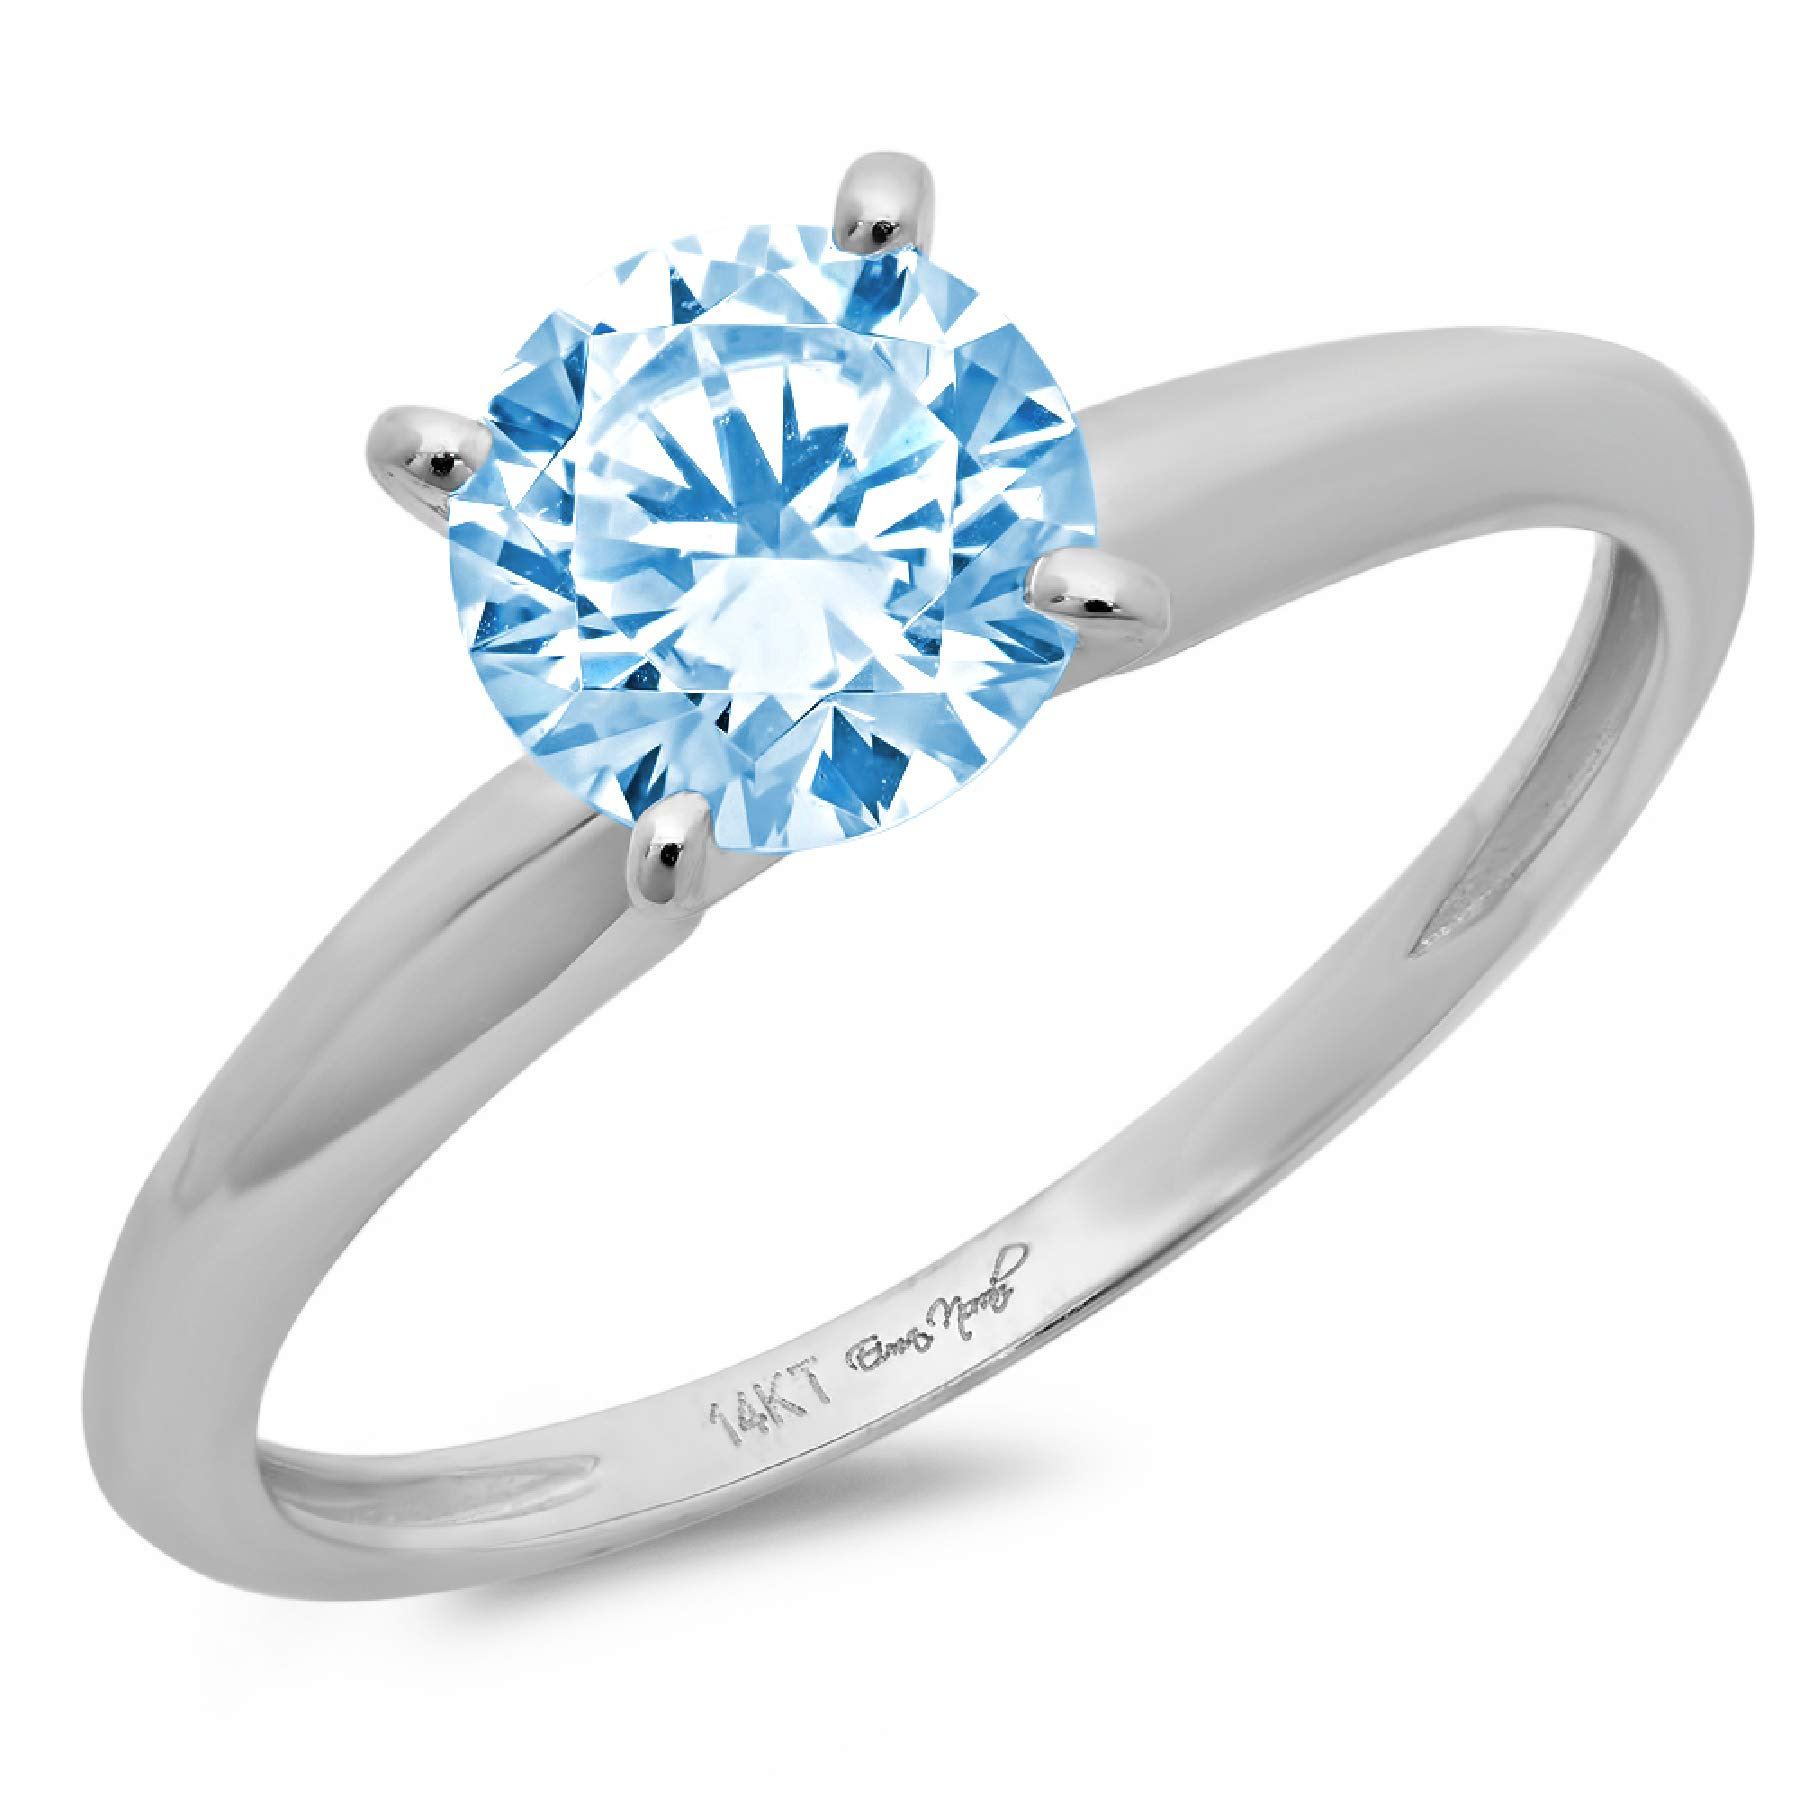 1.95ct Brilliant Round Cut Solitaire Aquamarine Blue Simulated Diamond CZ Ideal VVS1 D 4-Prong Classic Designer Statement Ring in Solid Real 14k White Gold for Women